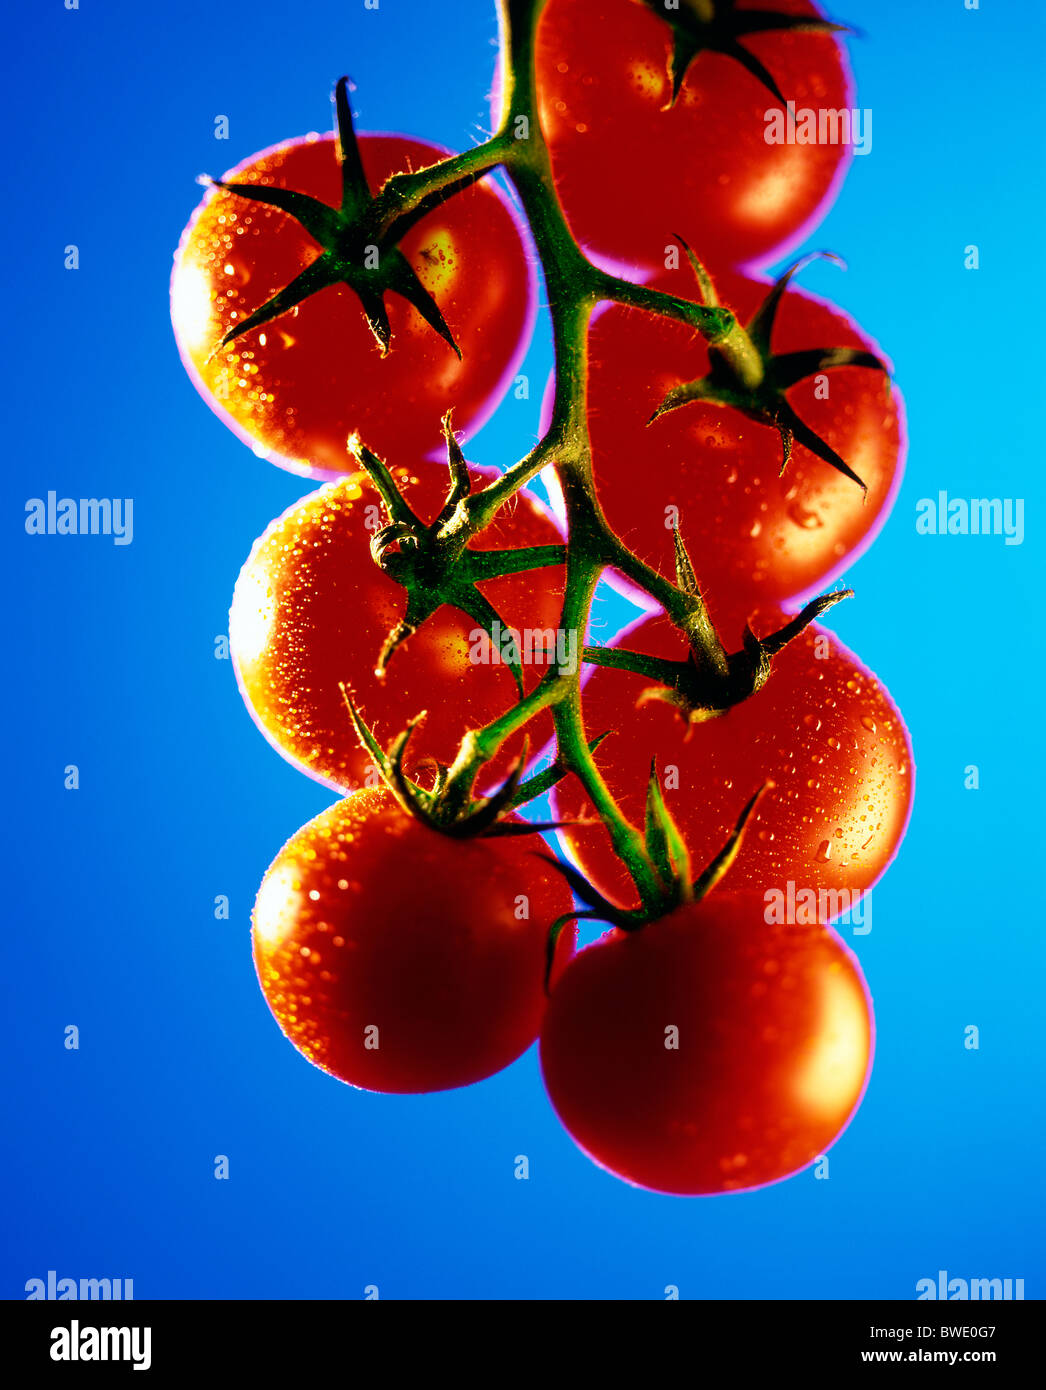 tomatoes abstract - Stock Image